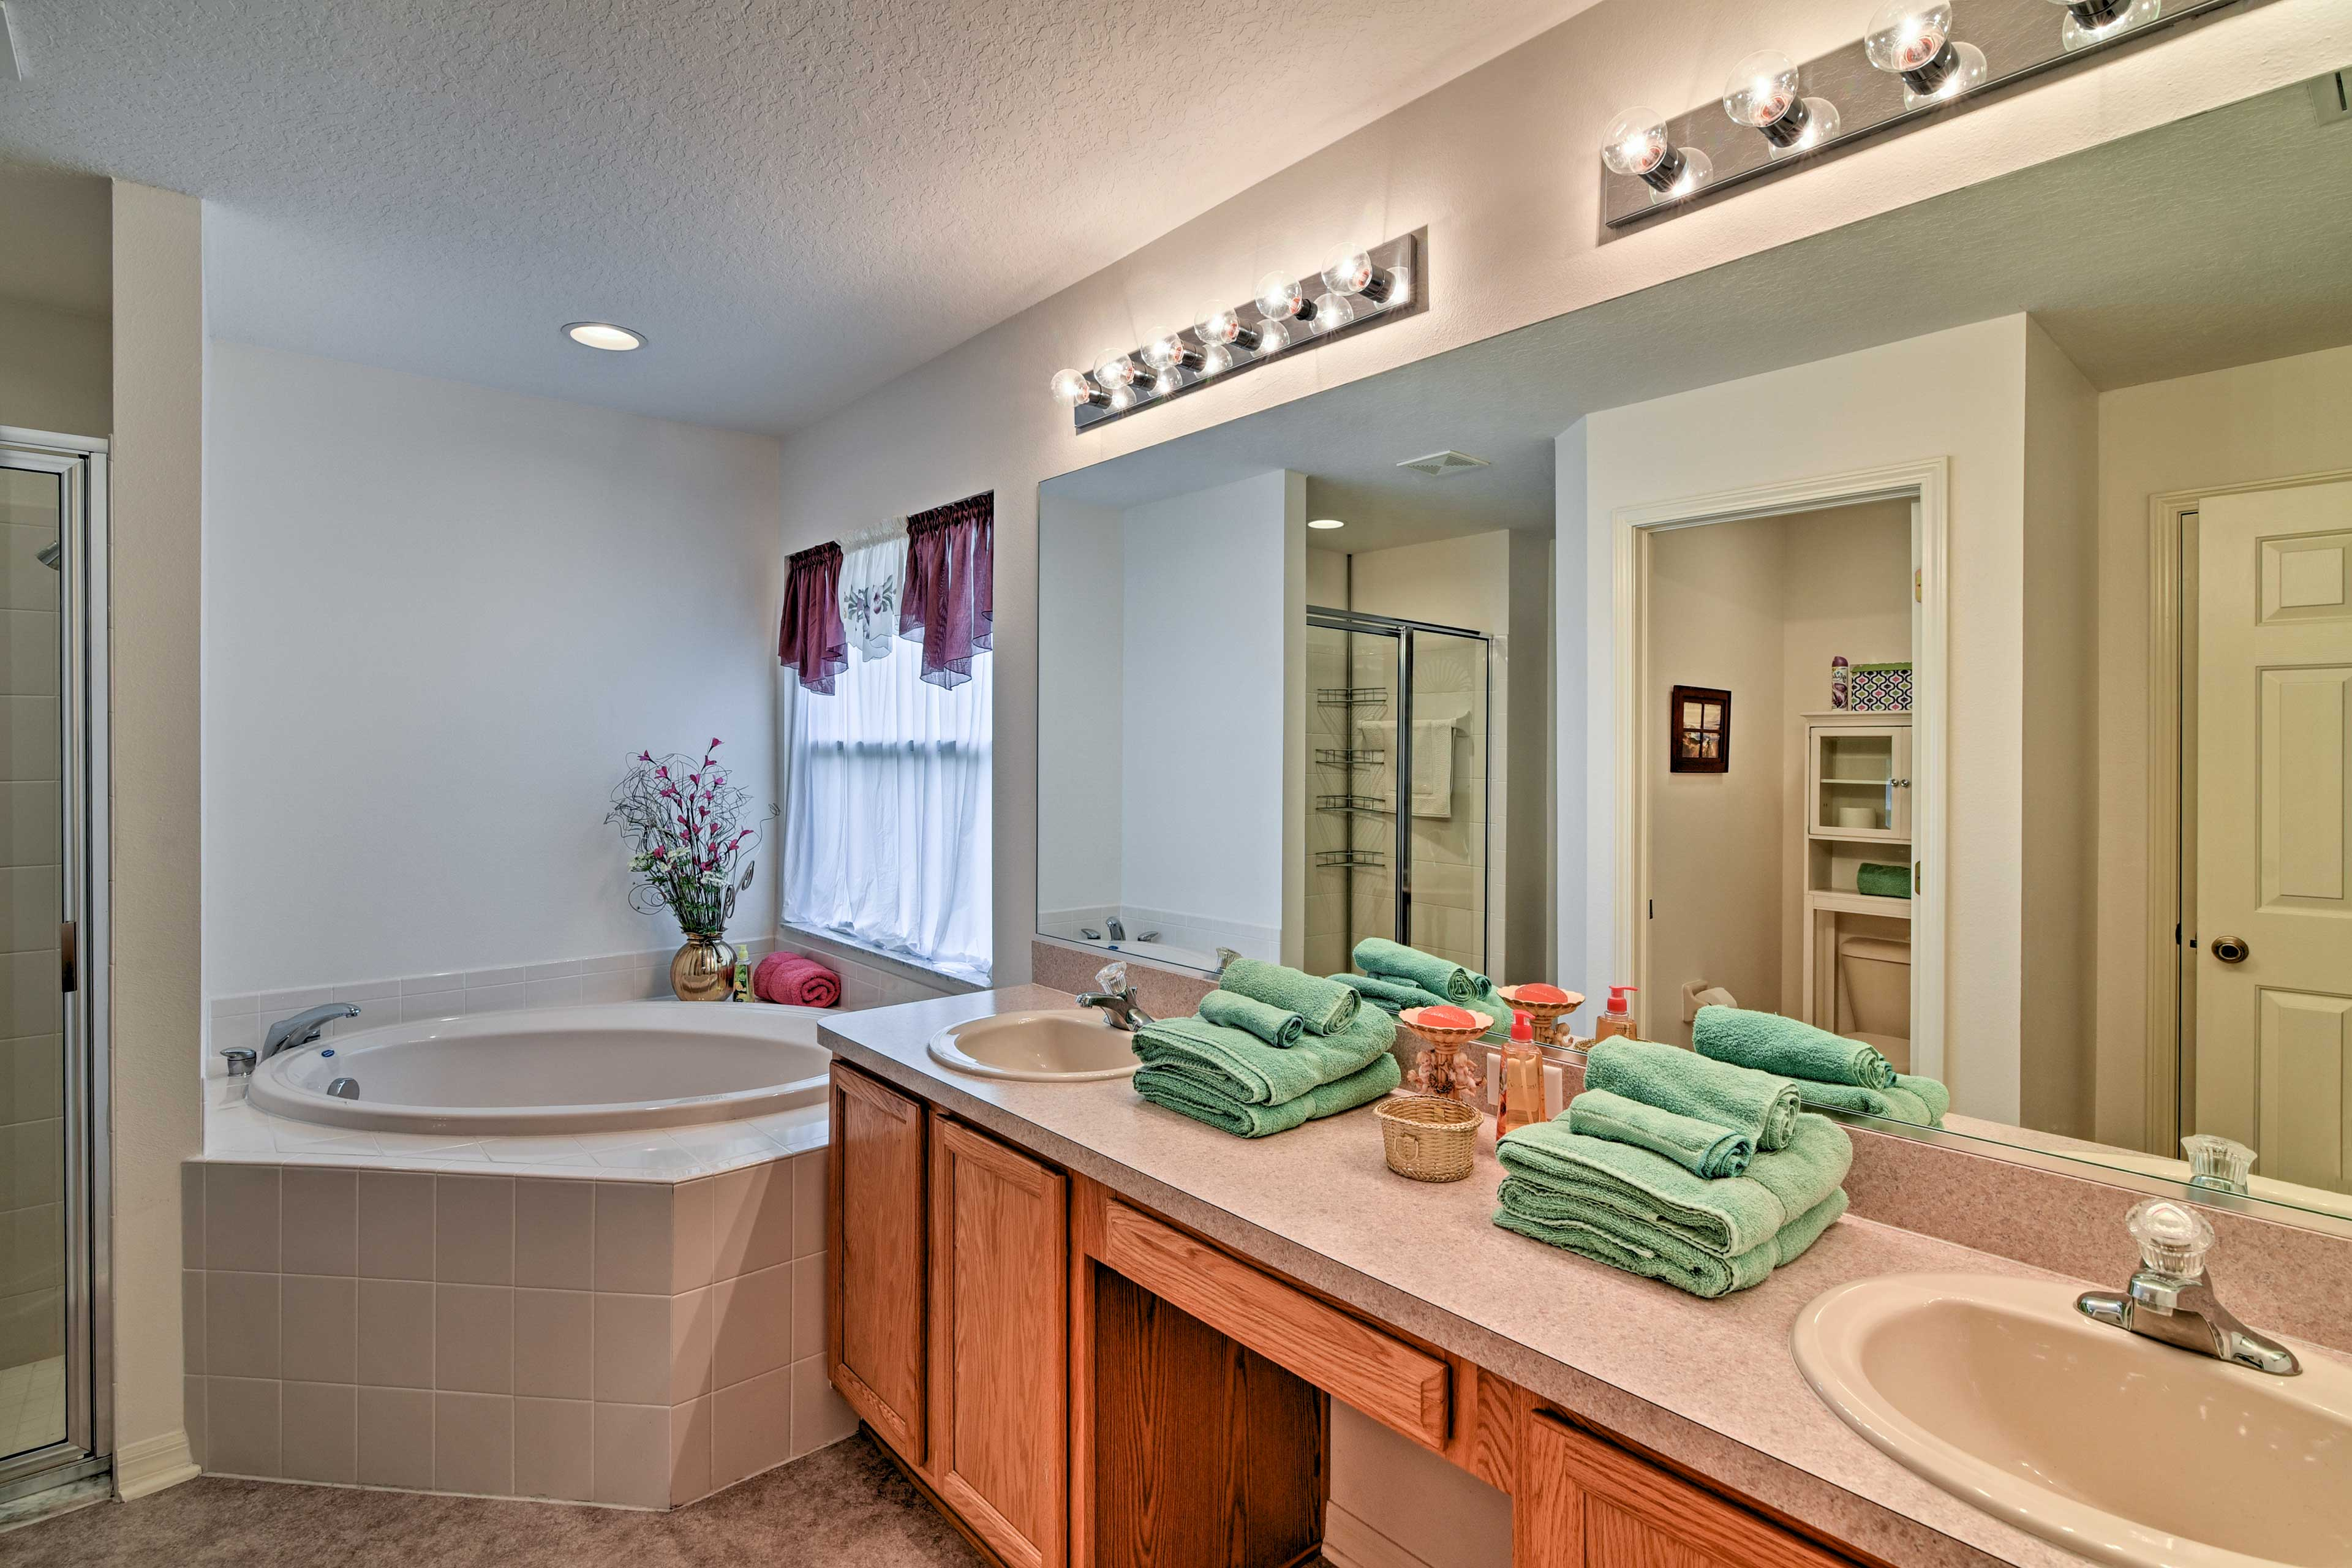 This en-suite bathroom offers a garden tub and a walk-in shower.